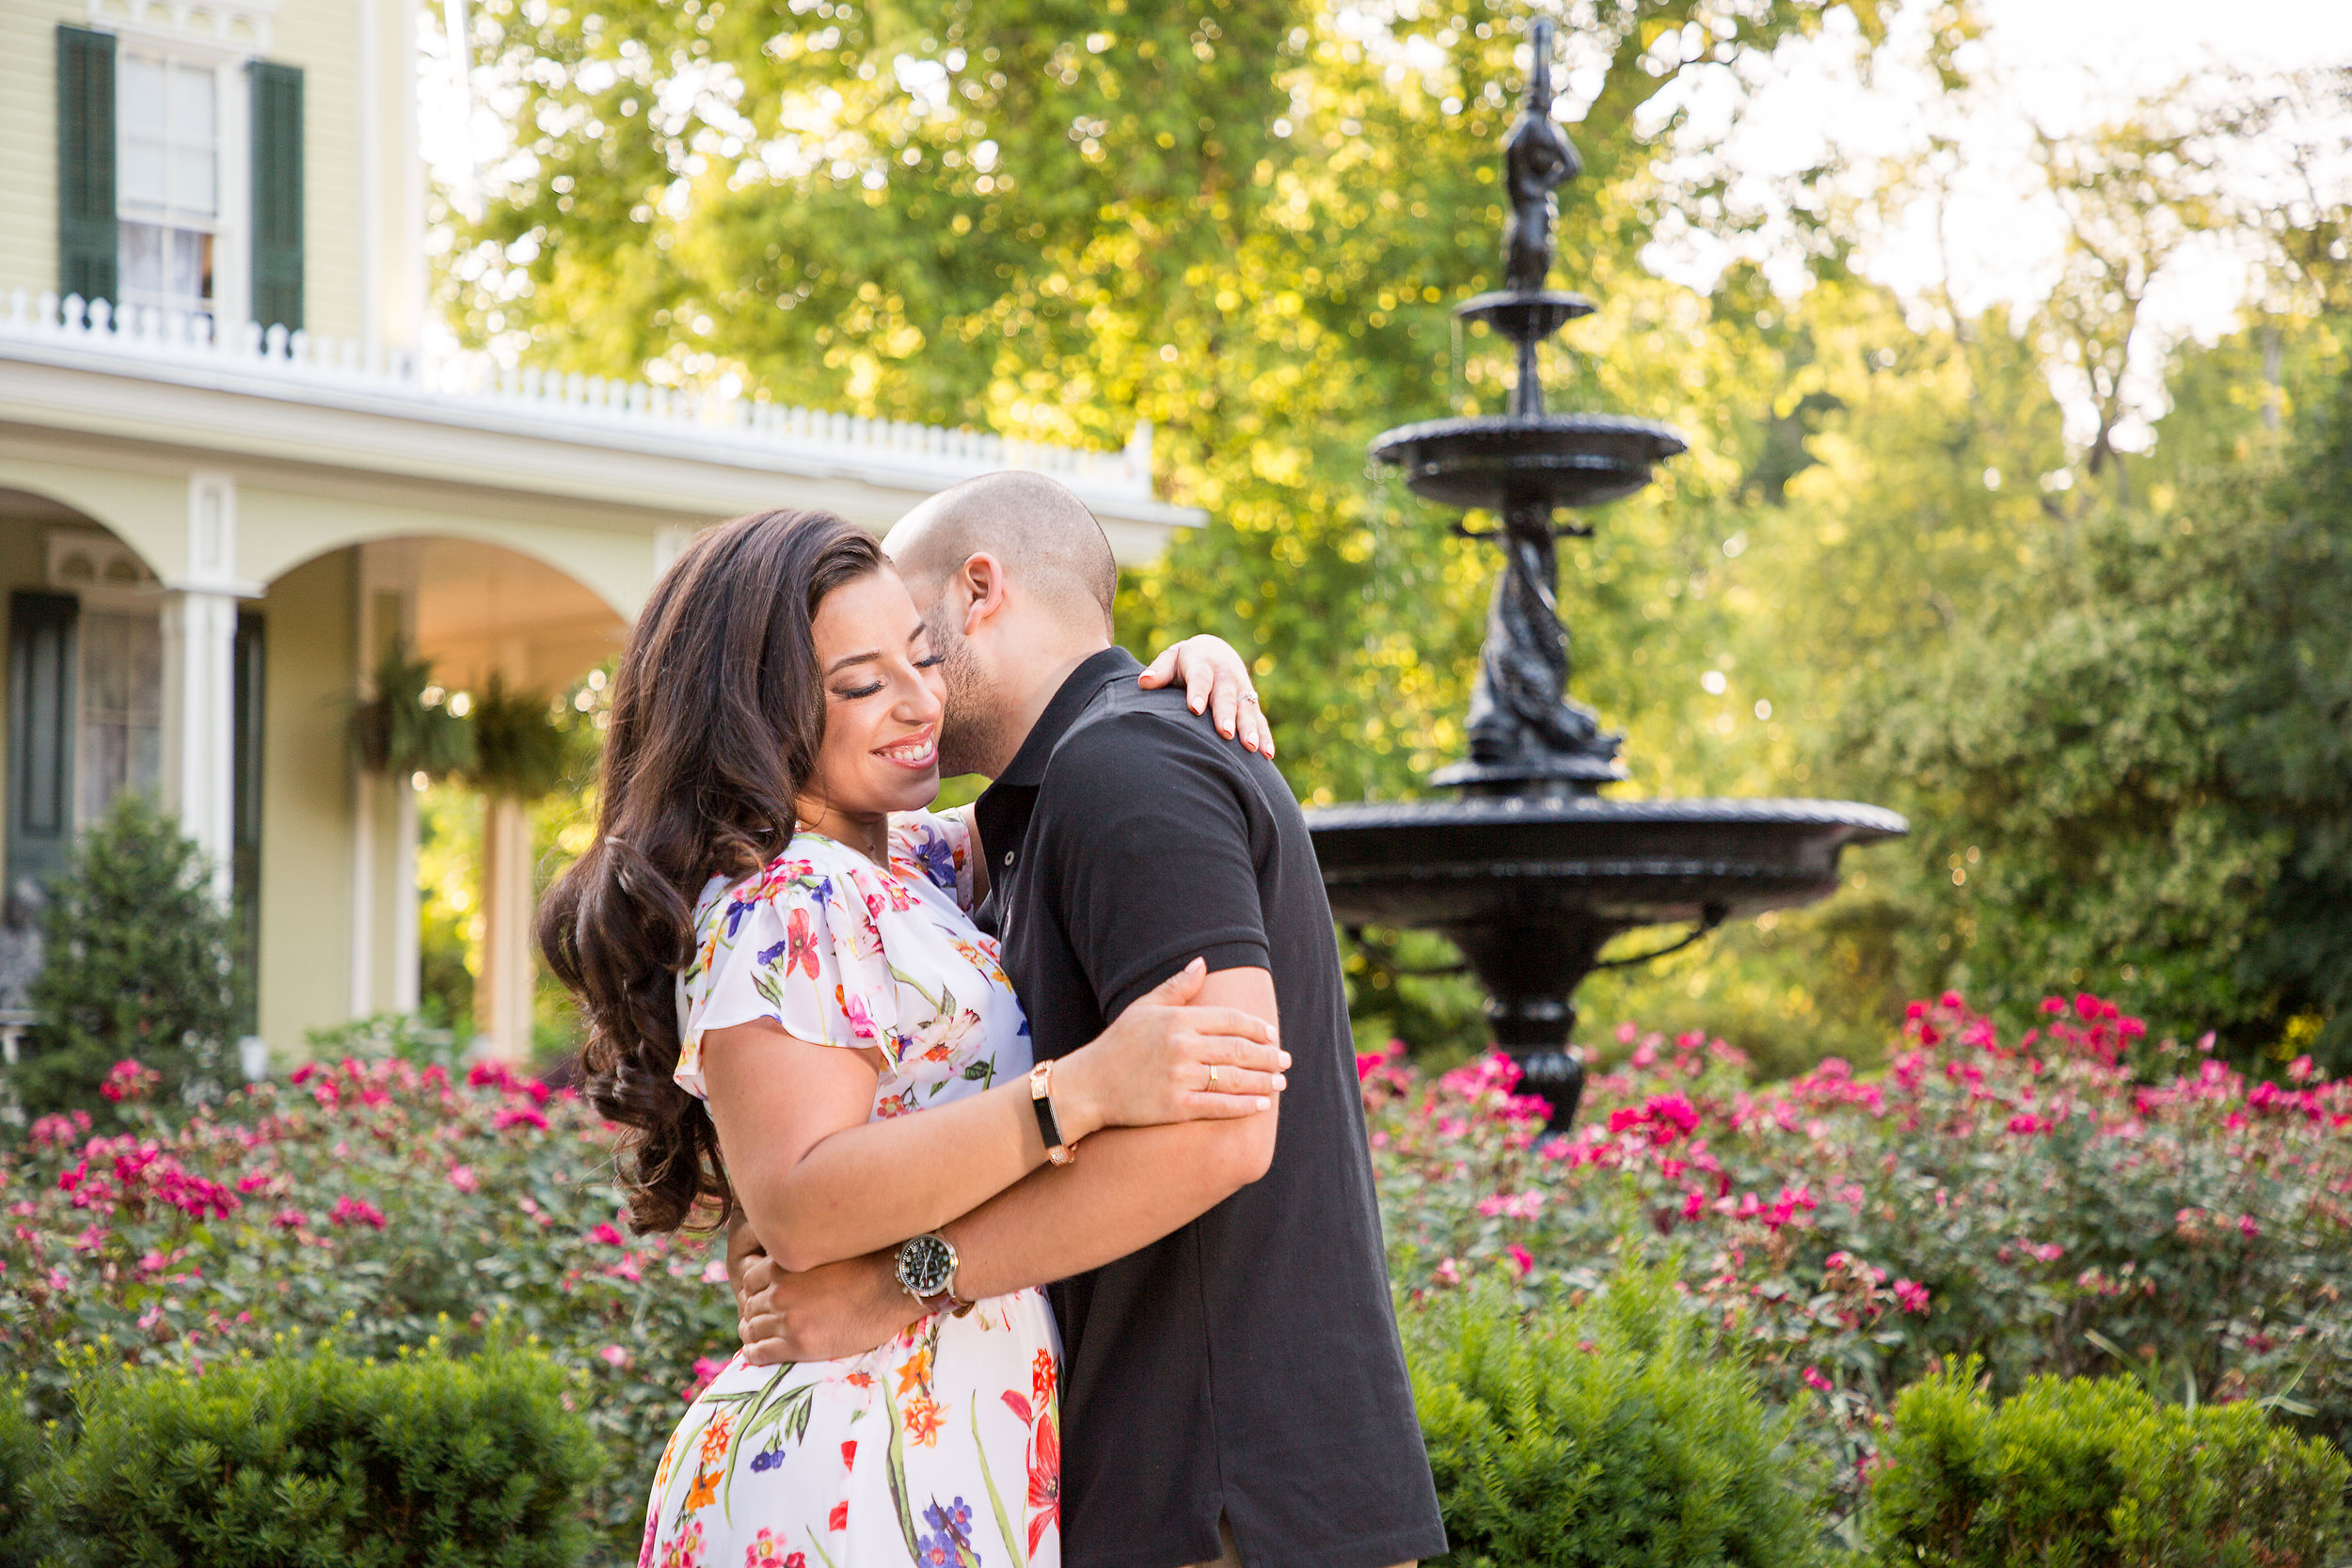 Engagement session at Merry Sherwood in Berlin Md. Hair and makeup expertly done by  https://allaboutusalonandspa.com .